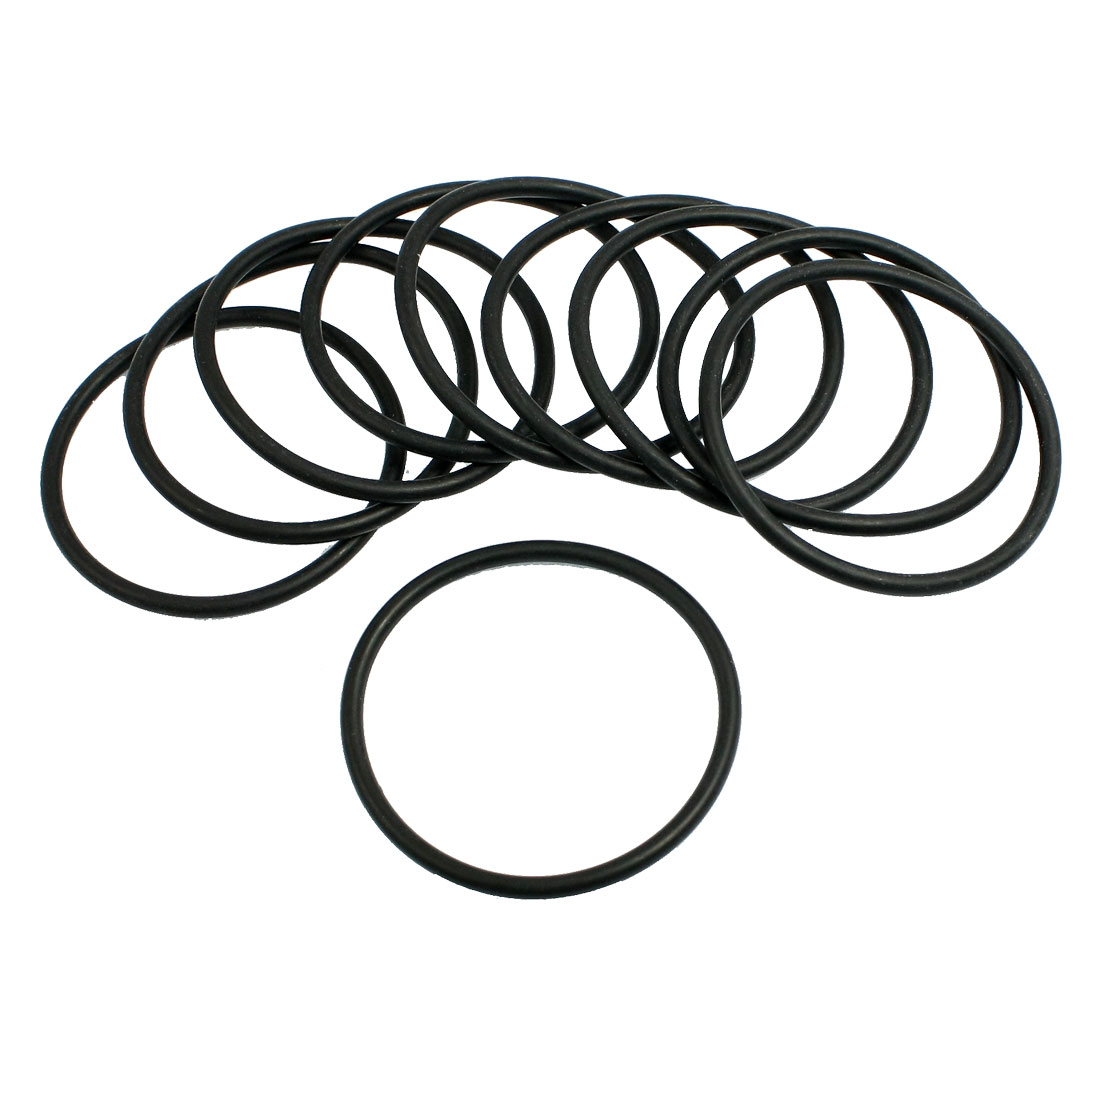 10 Pcs 53mm x 3.1mm Black Silicone O Rings Oil Seals Gaskets